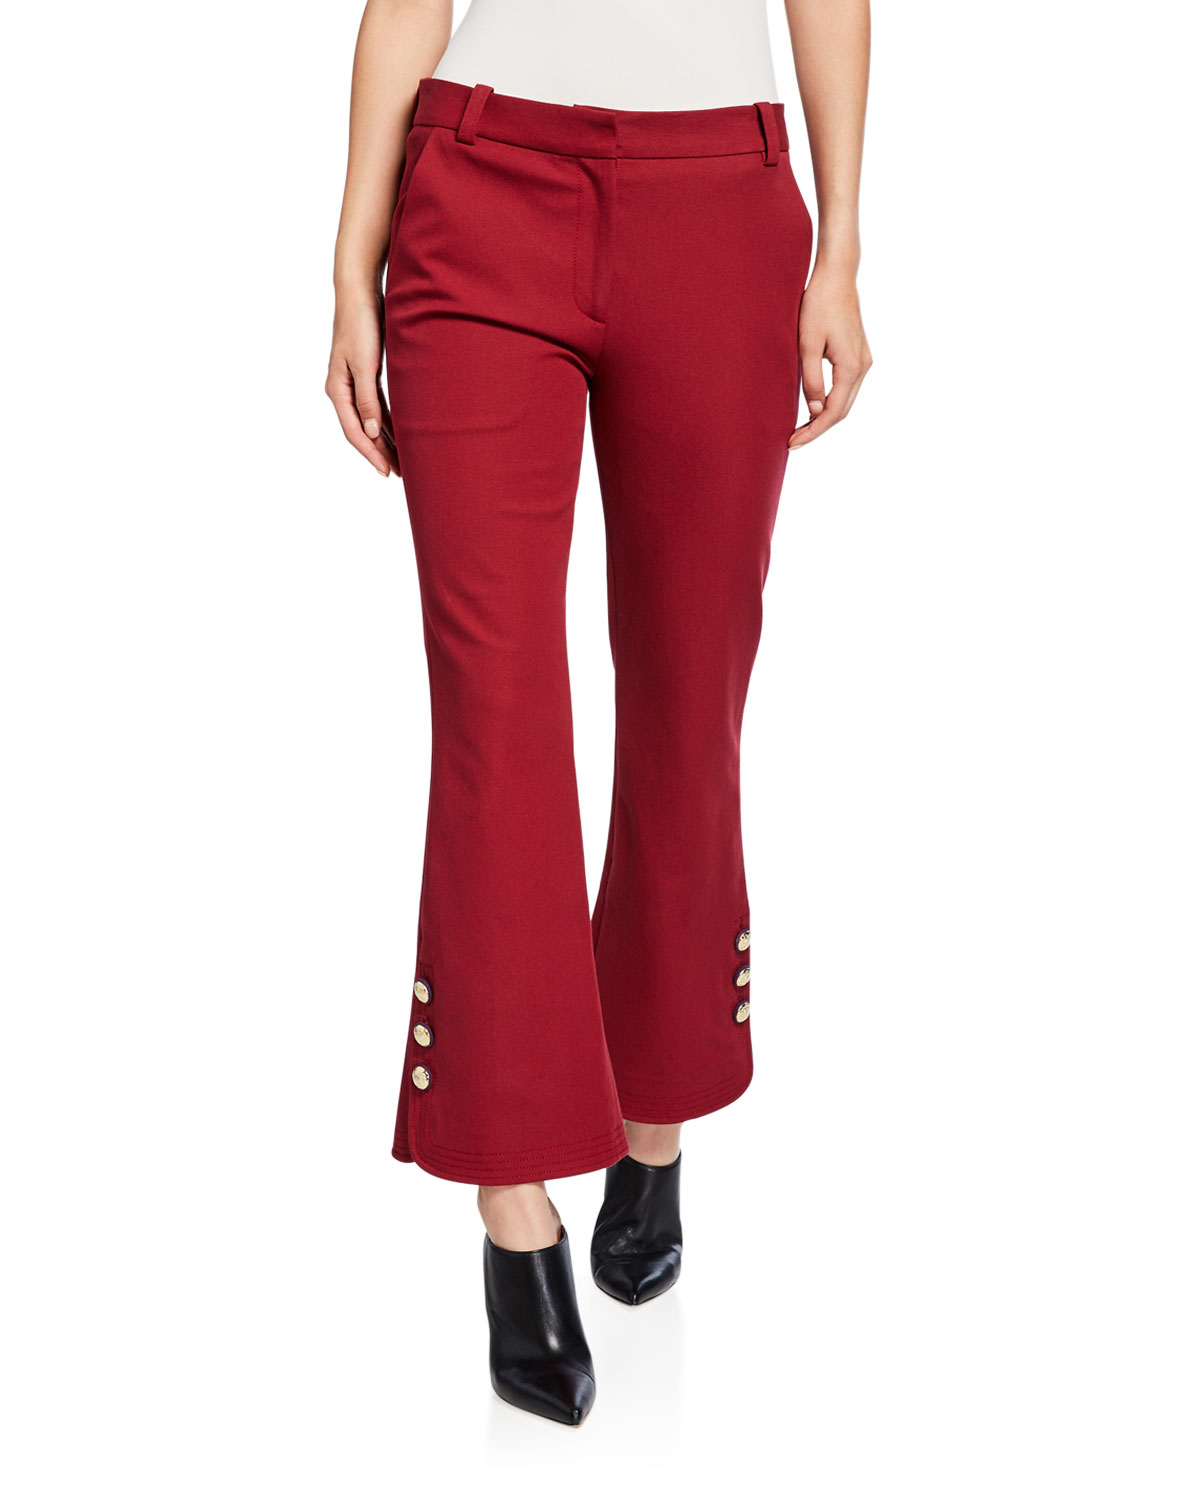 Derek Lam 10 Crosby Pants CROPPED FLARE TROUSERS WITH SAILOR BUTTONS